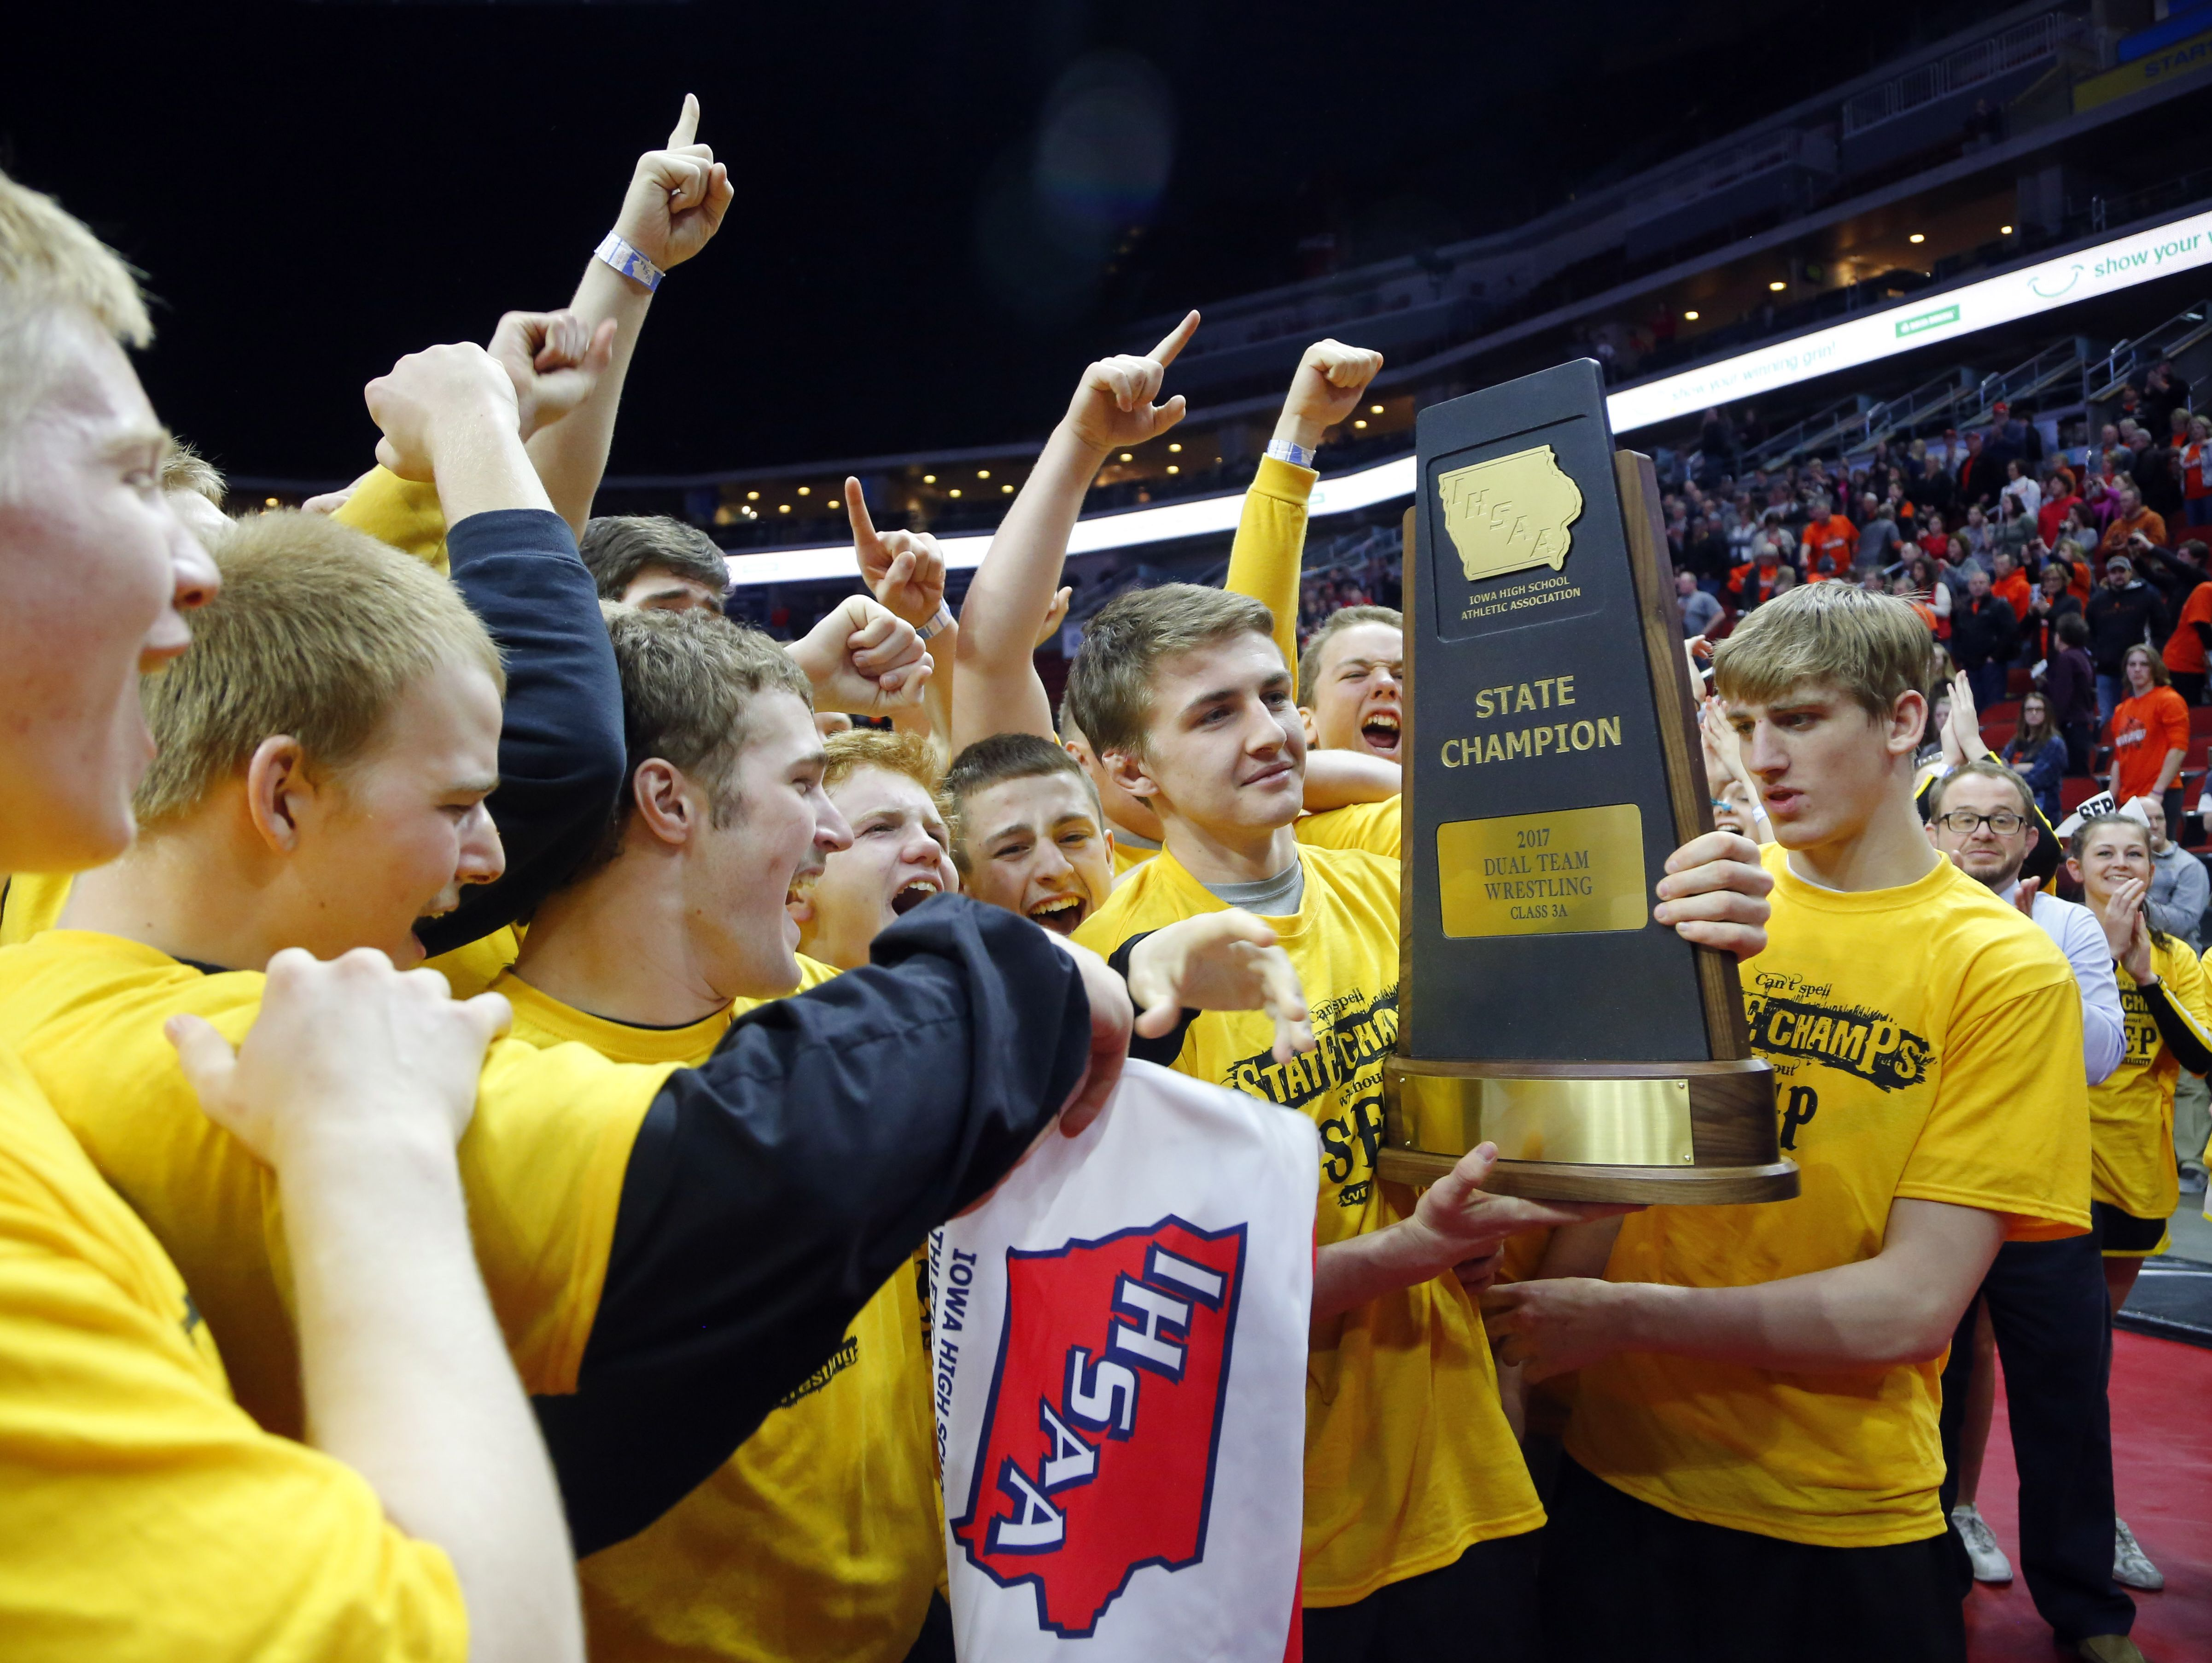 Southeast Polk celebrates after beating Fort Dodge to win the class 3A championship at the wrestling state team dual tournament Wednesday, Feb. 15, 2017.